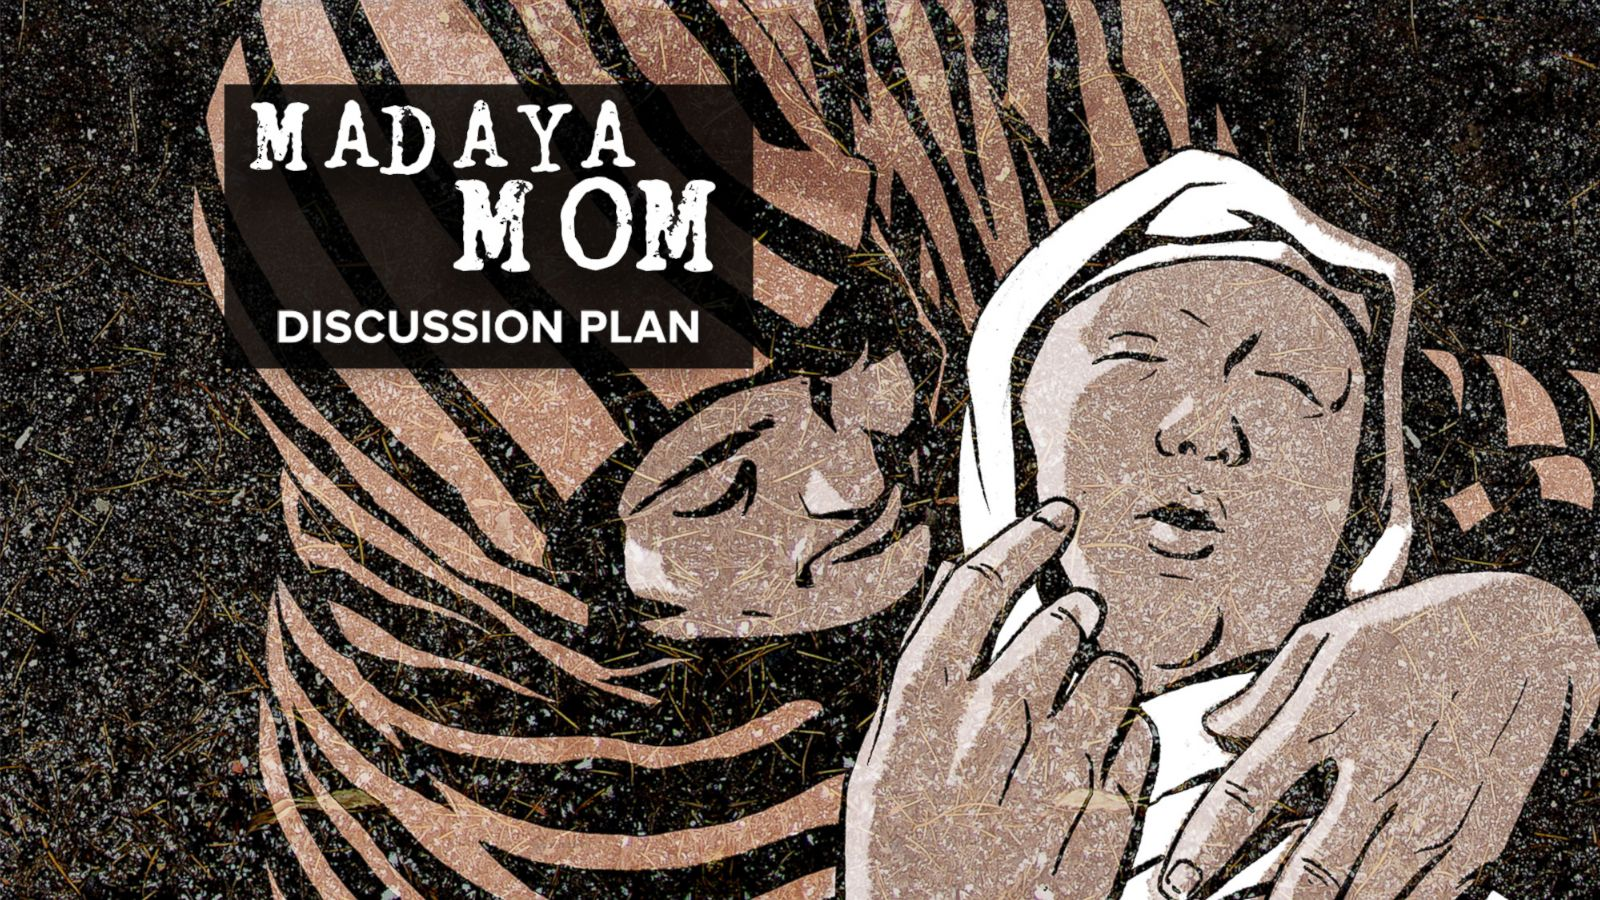 A Teacher's Guide for Discussing 'Madaya Mom' With Students